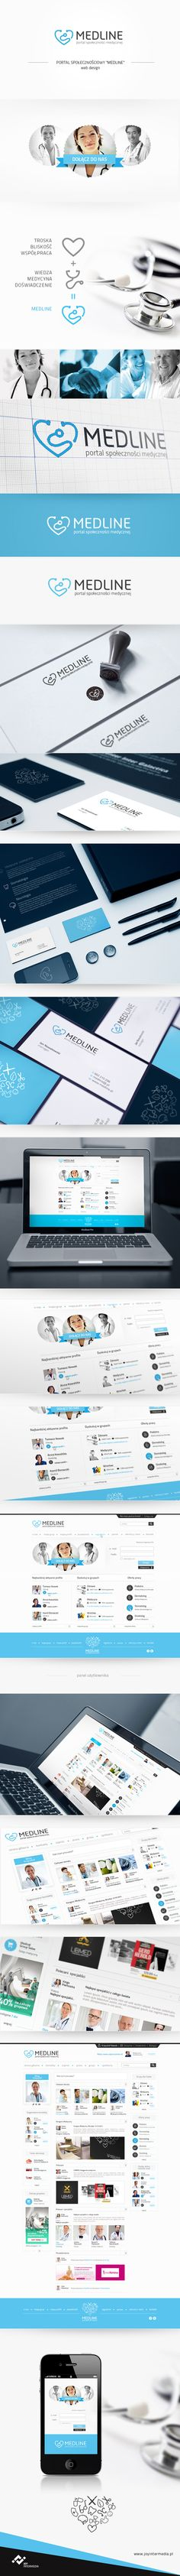 Medline on Behance